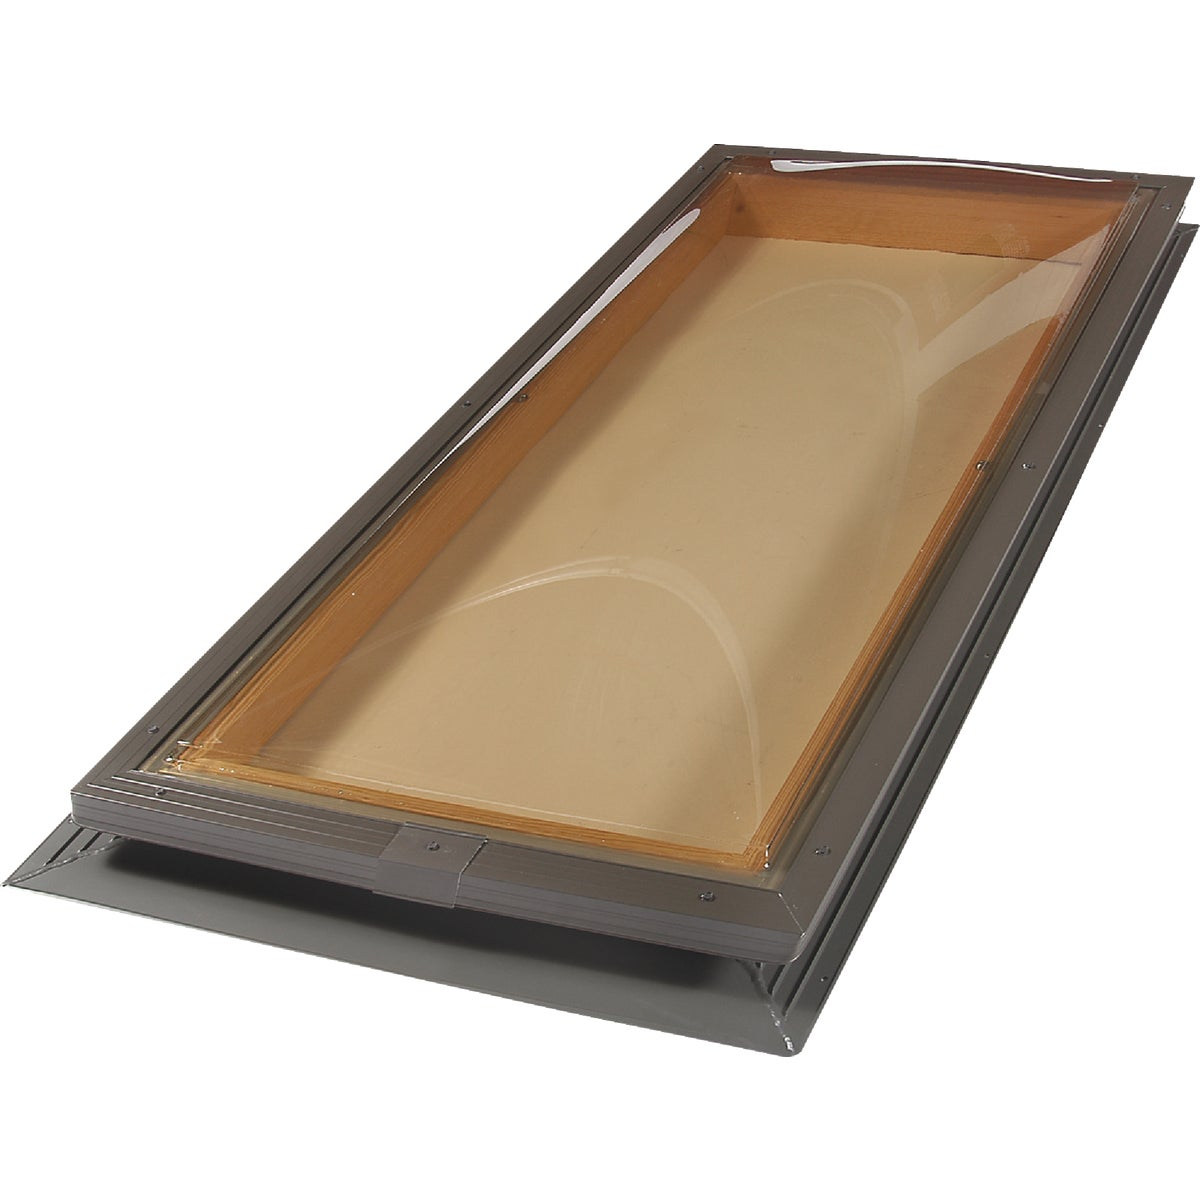 2X4 BZ/CL 3DOME SKYLIGHT - SFAW2246BCCB by Sun Tek Manuf Inc